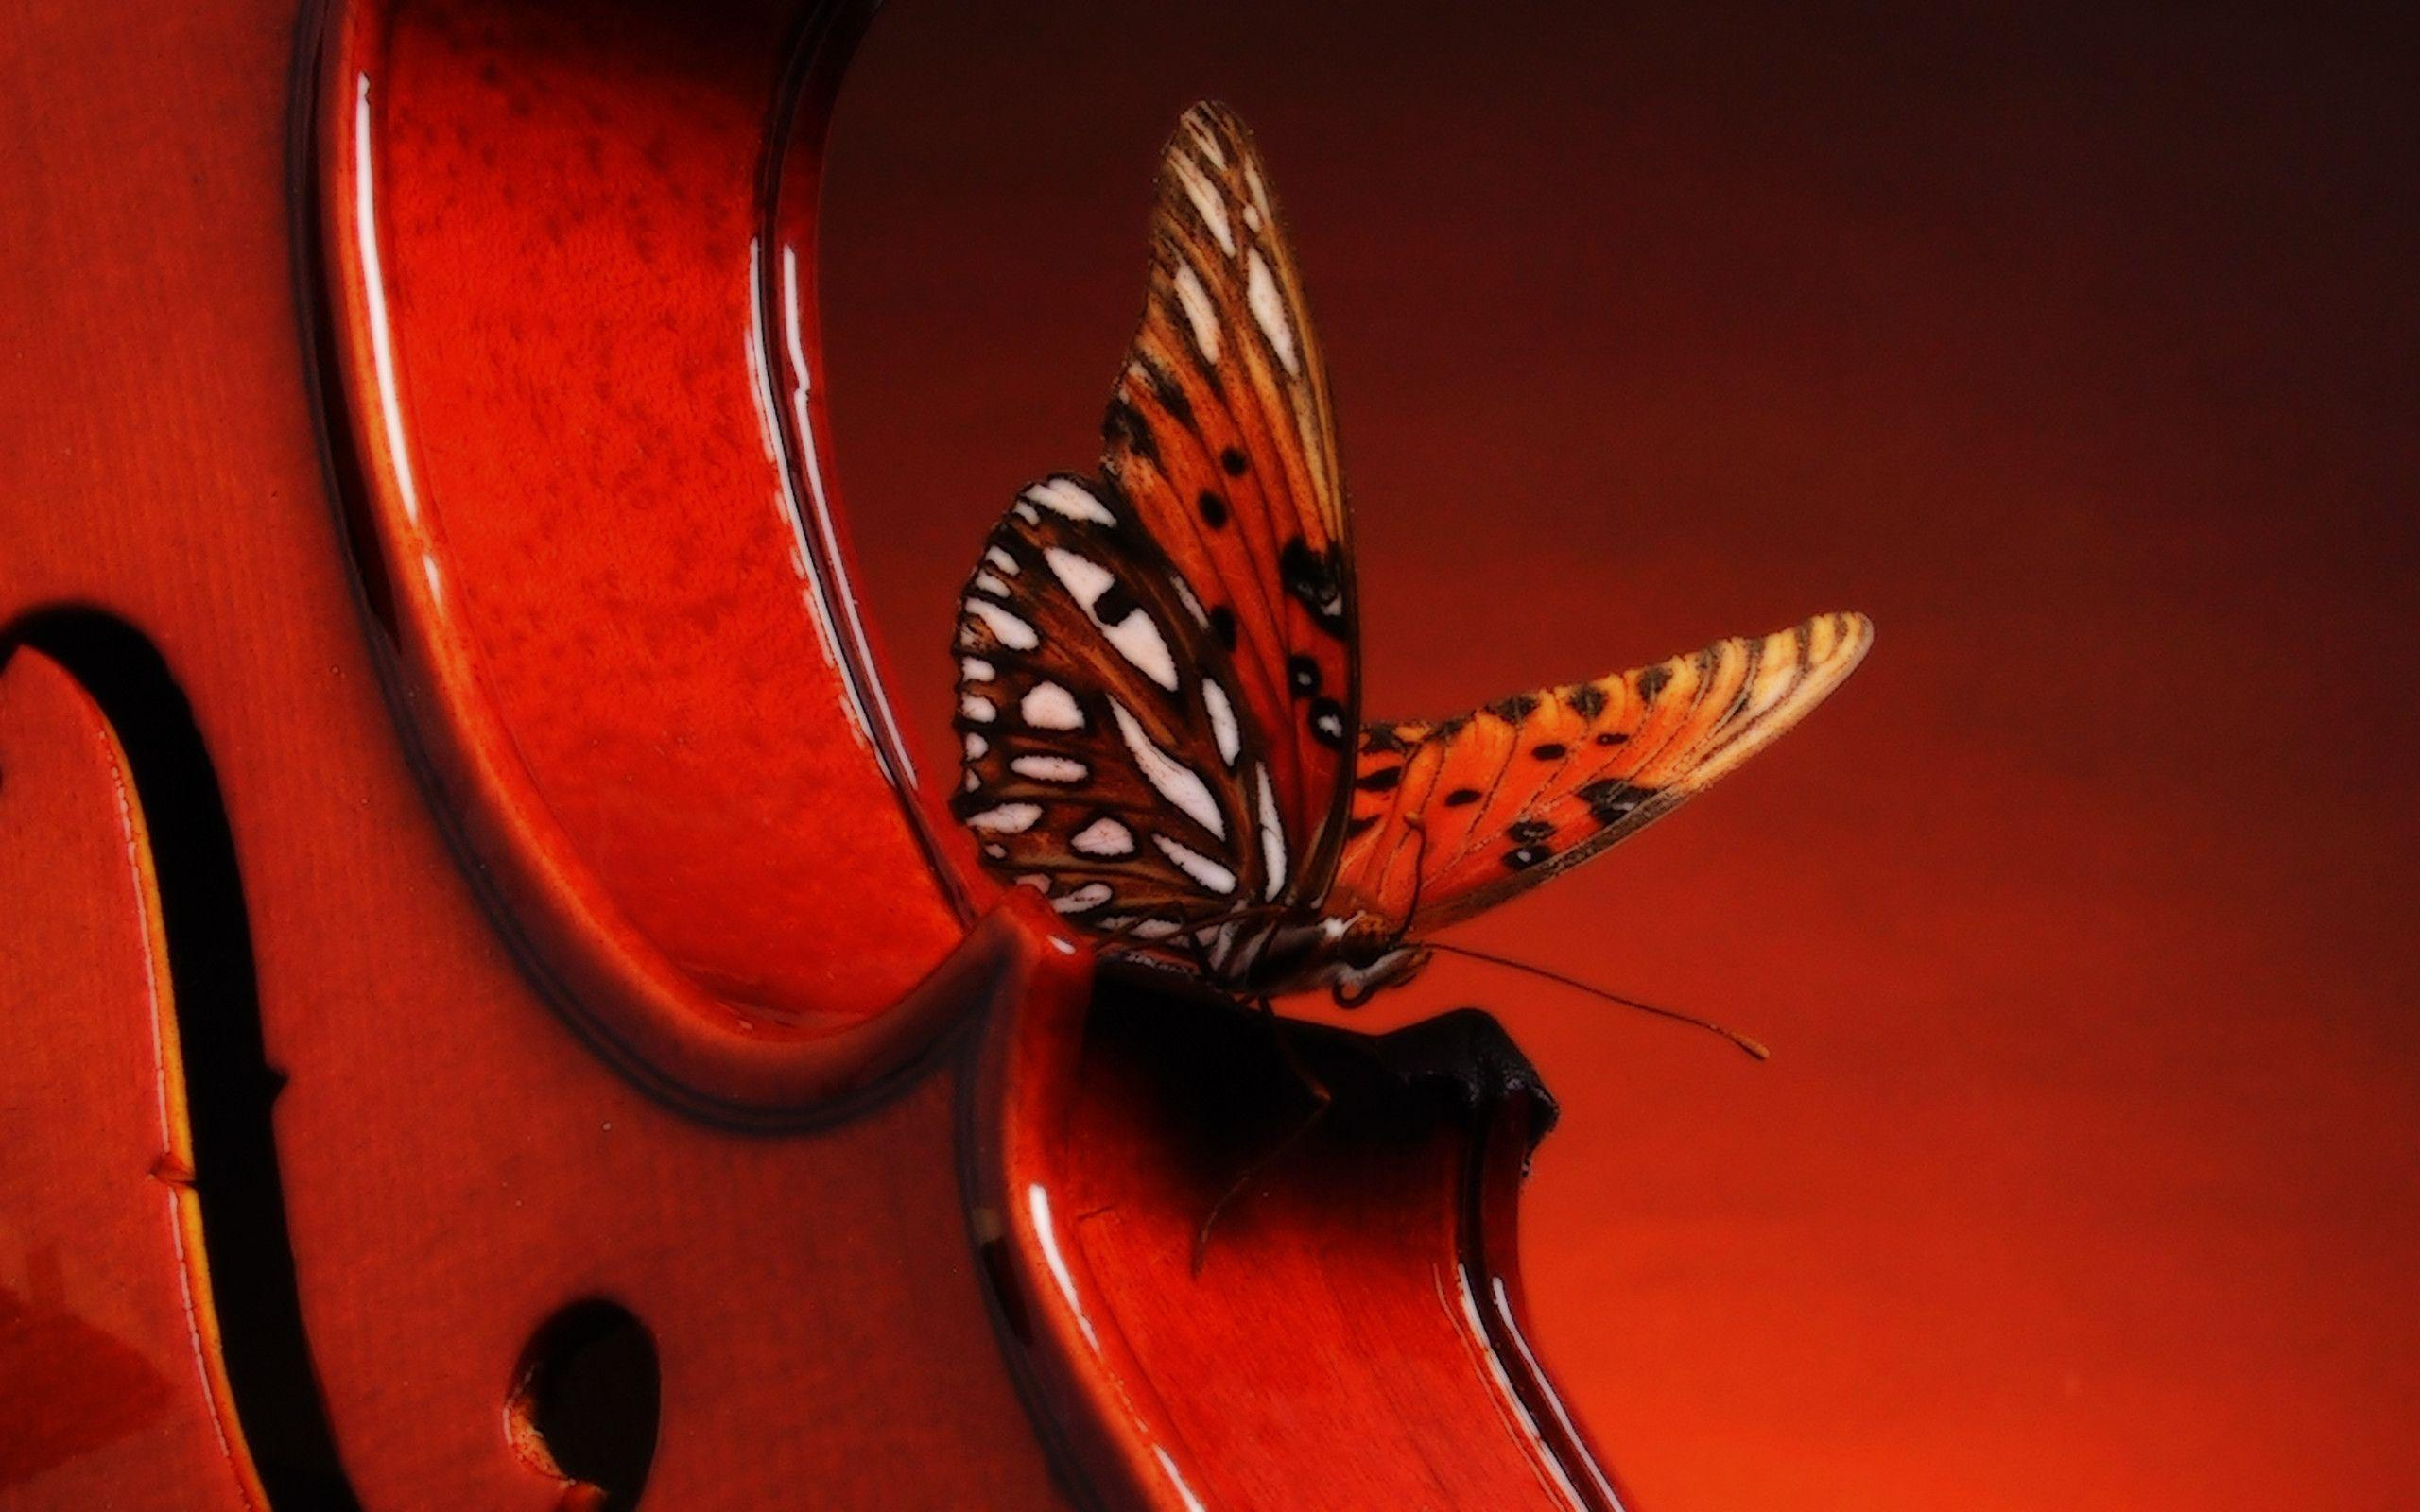 Hd Wallpapers Violin 2560 X 1600 2369 Kb Jpeg | HD Wallpapers ...